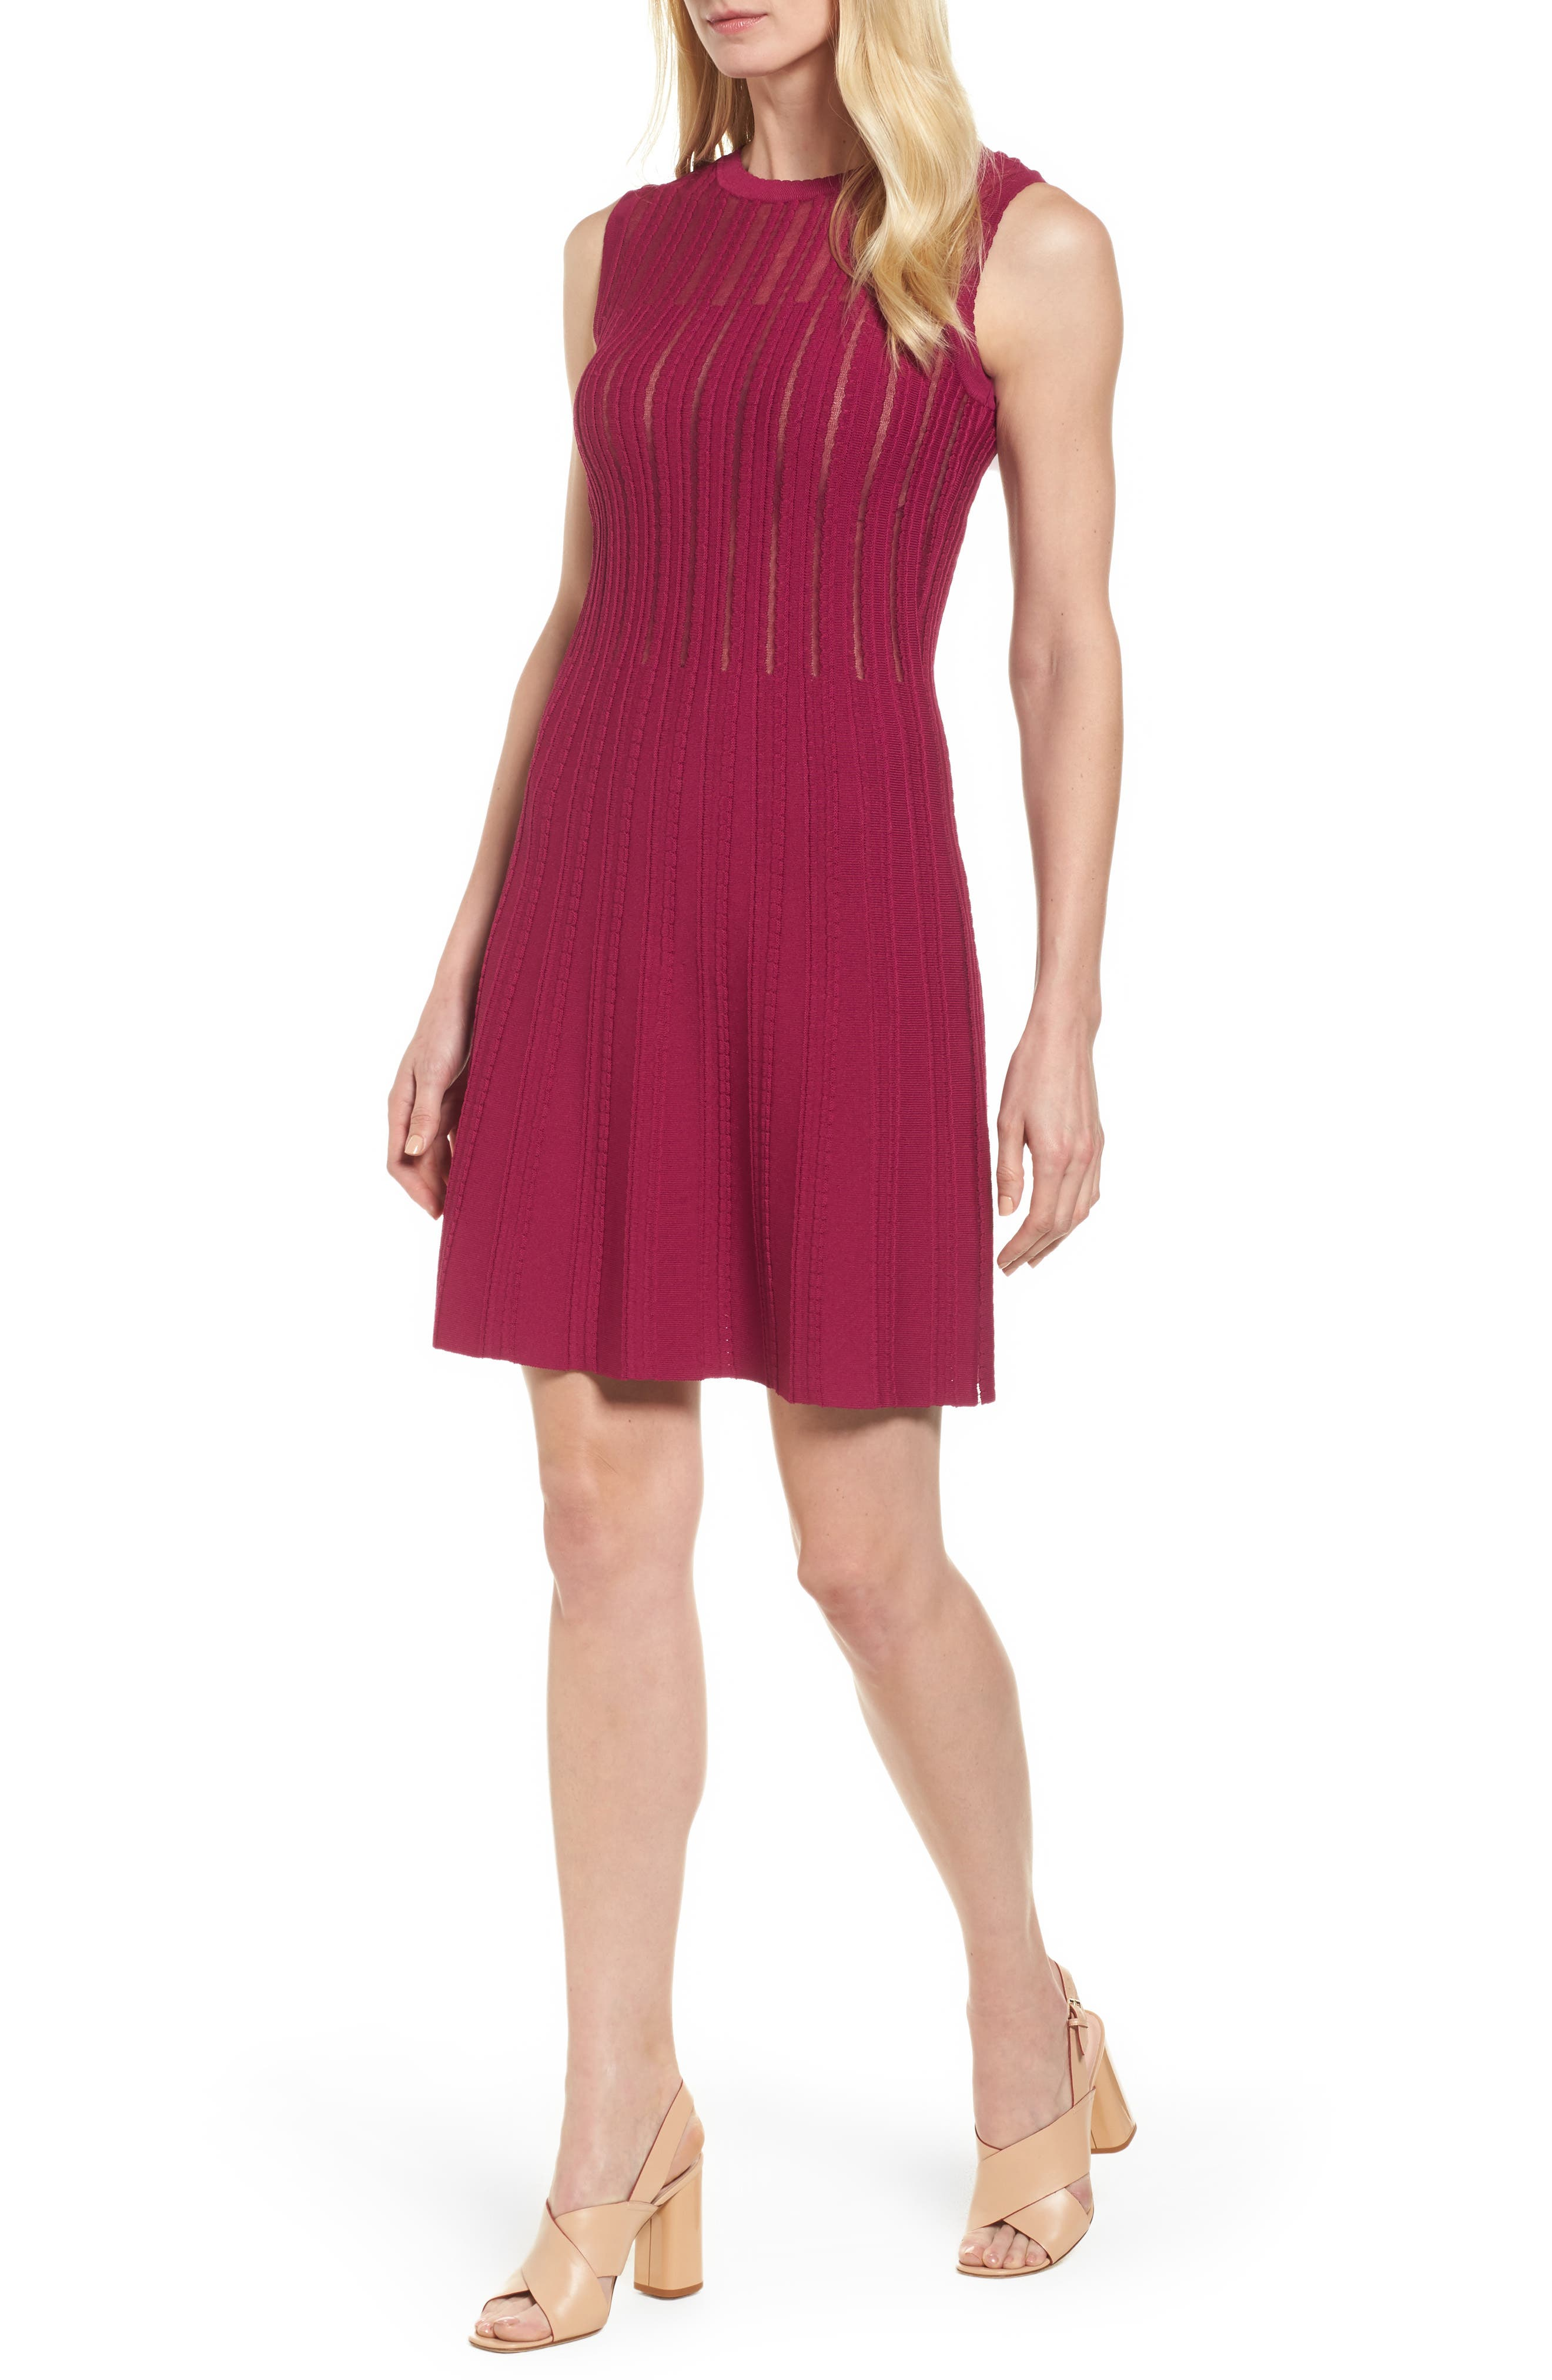 Alternate Image 1 Selected - Anne Klein Knit Fit & Flare Dress